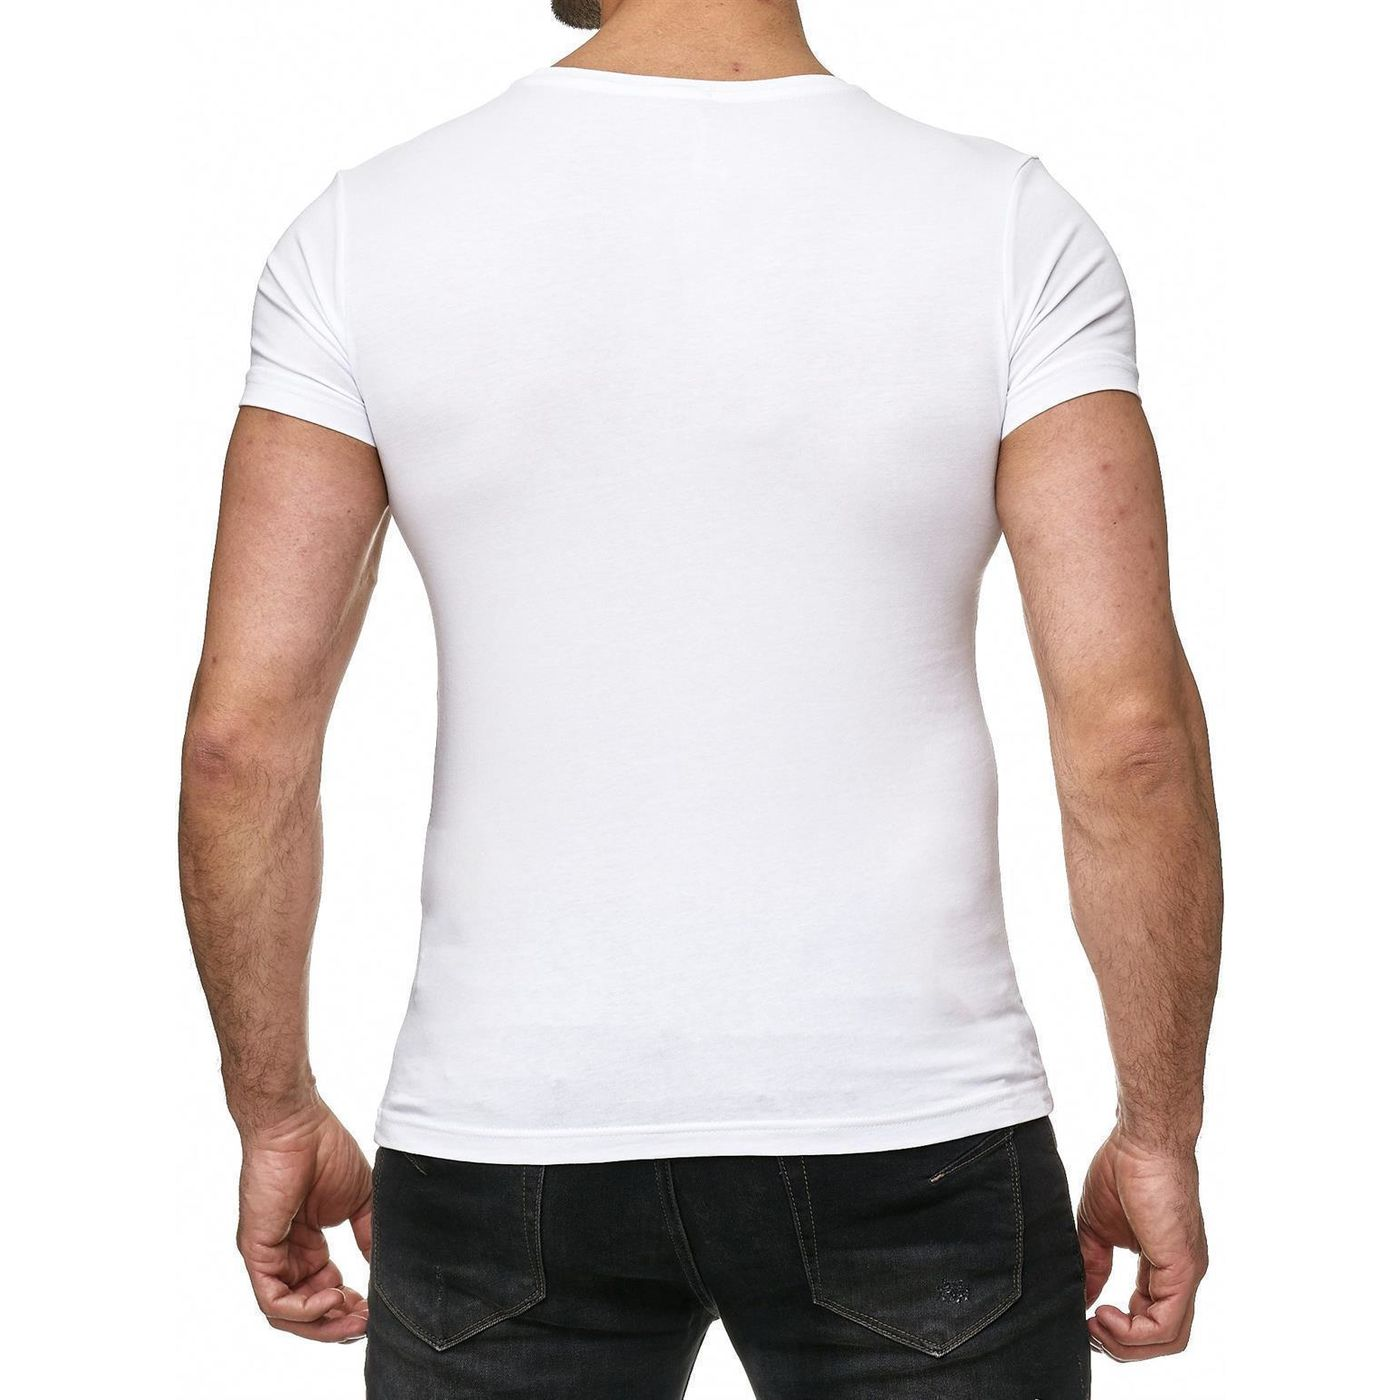 T shirts & Tops for Men